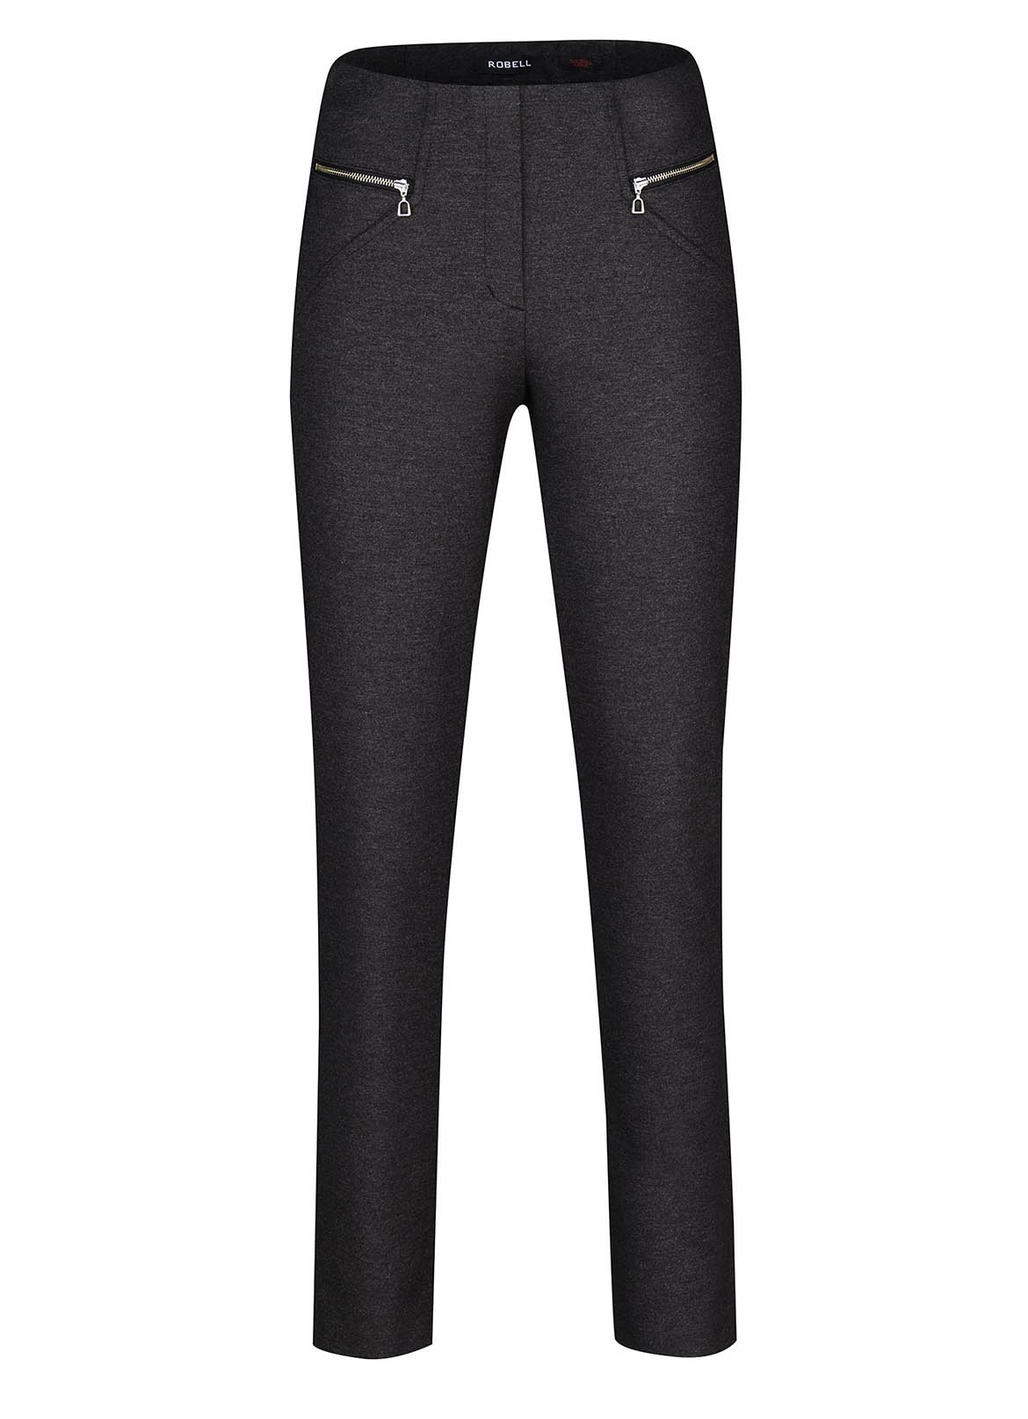 Robell Mimi Wool-Mix Trousers in Black